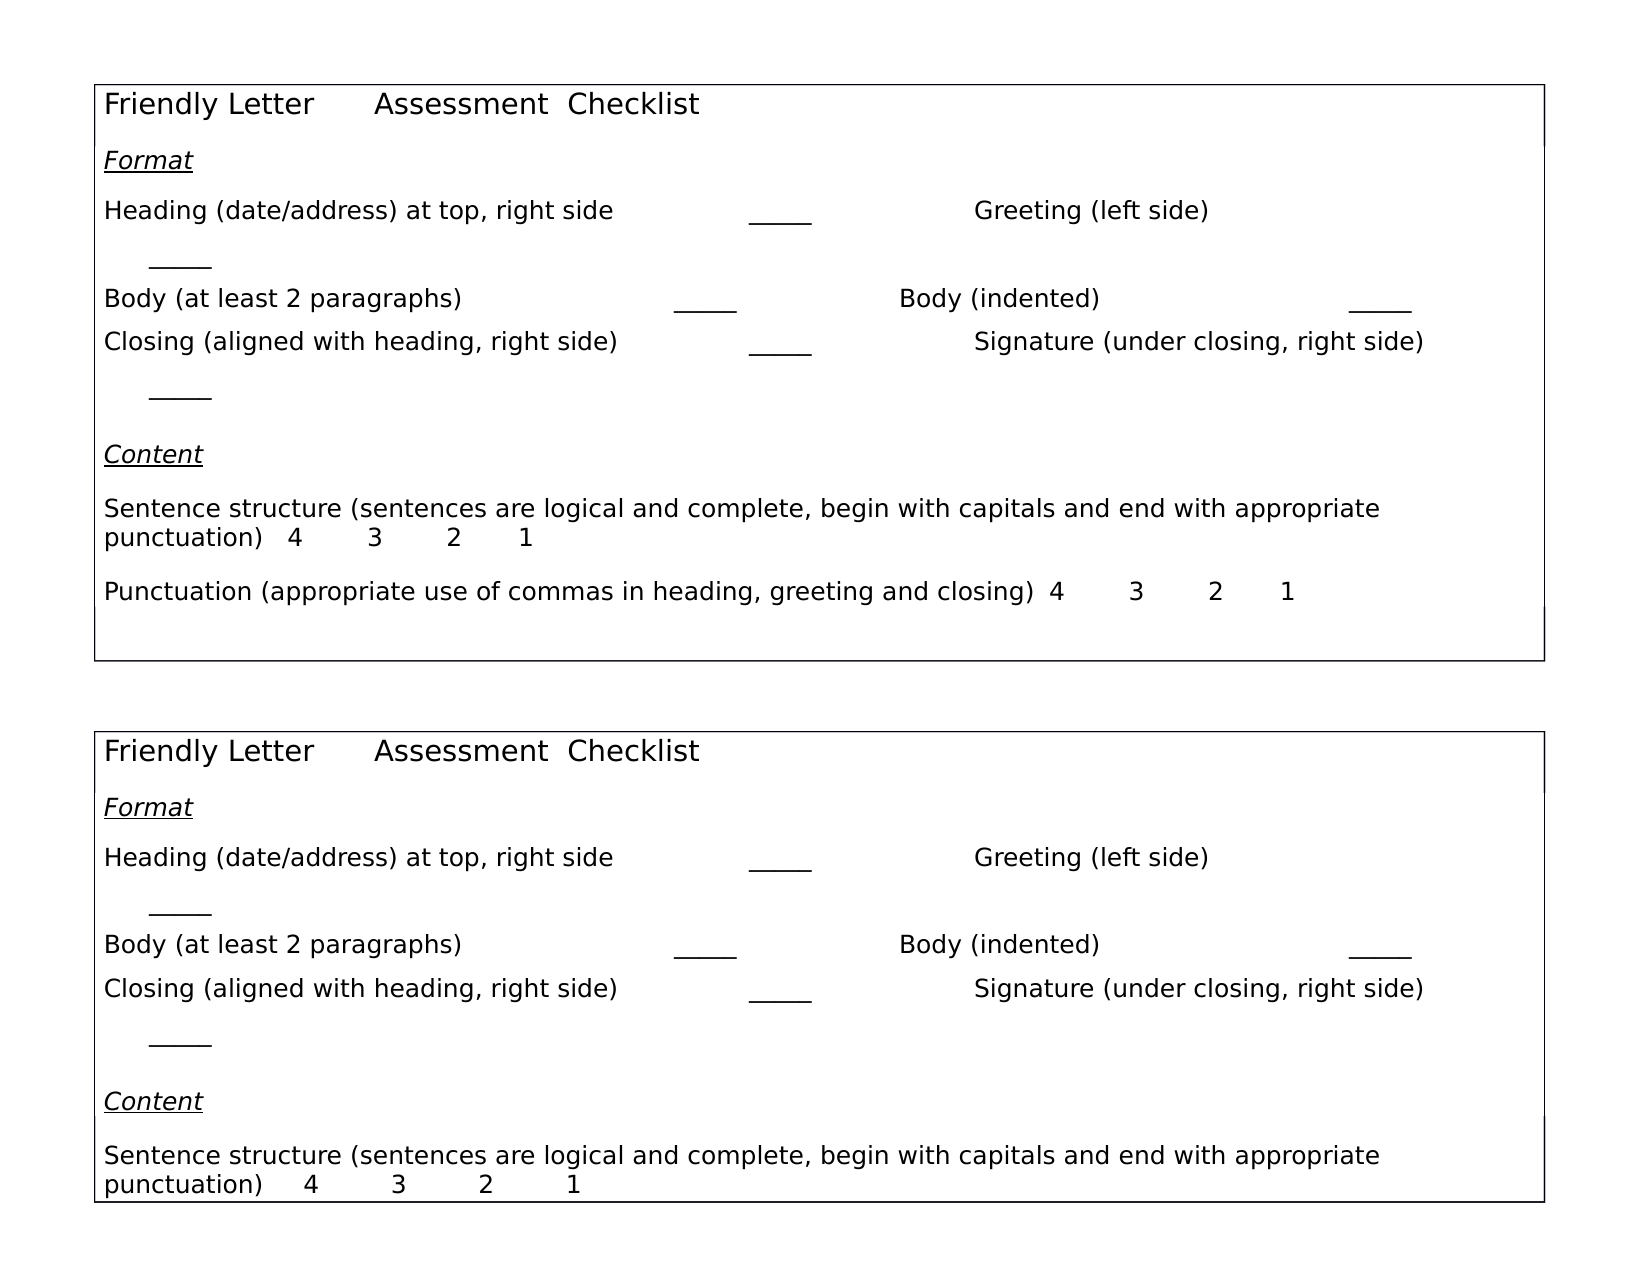 Friendly letter assessment  Resource Preview